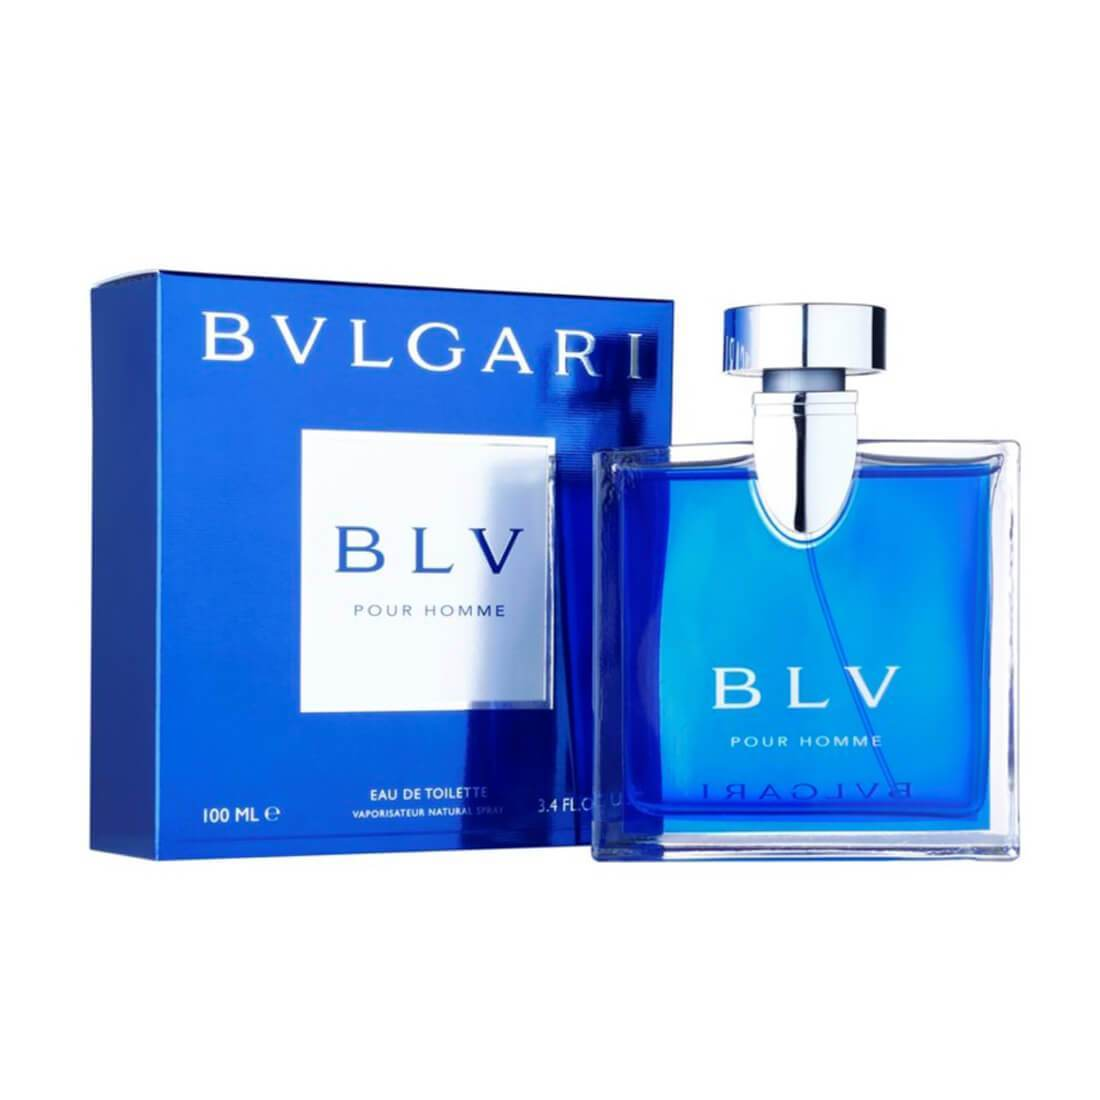 Bvlgari Blv EDT Perfume For Men - 100ml